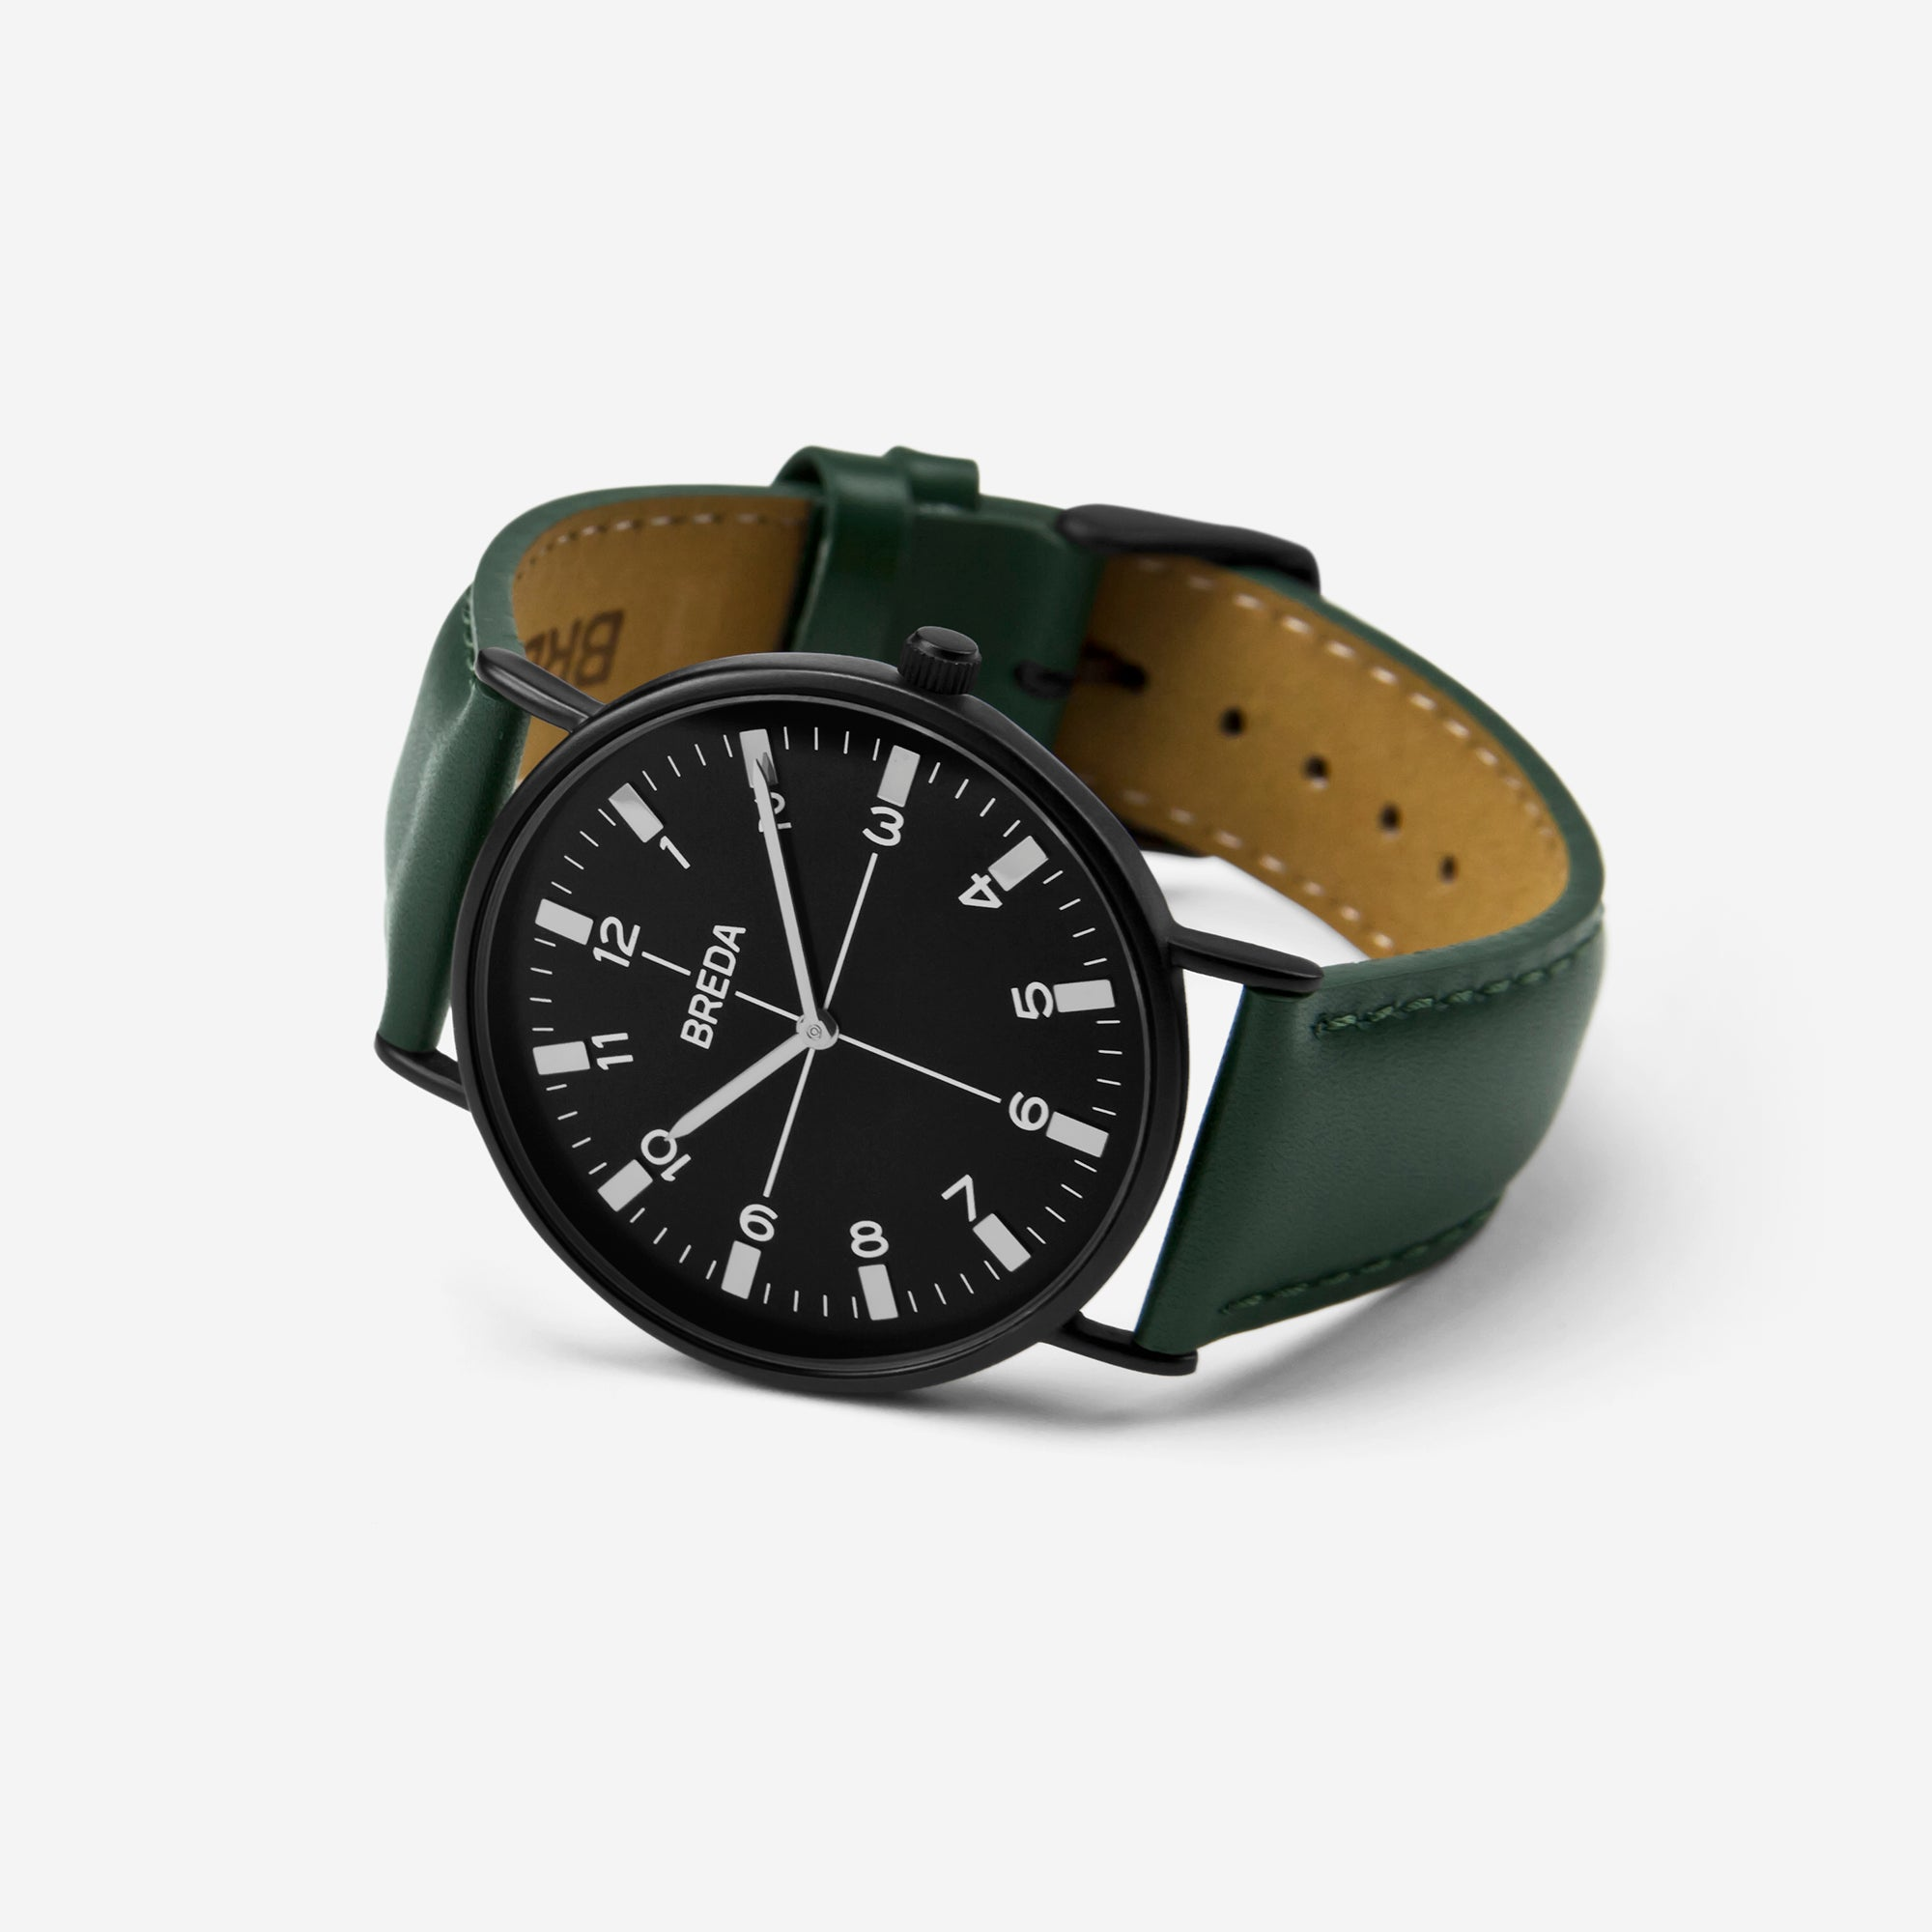 //cdn.shopify.com/s/files/1/0879/6650/products/BREDA-Belmont-1646j-Black-Green-Watch-Angle_1ac1f0c7-0ac1-418d-b233-a973d86f5e6b_1024x1024.jpg?v=1543249388